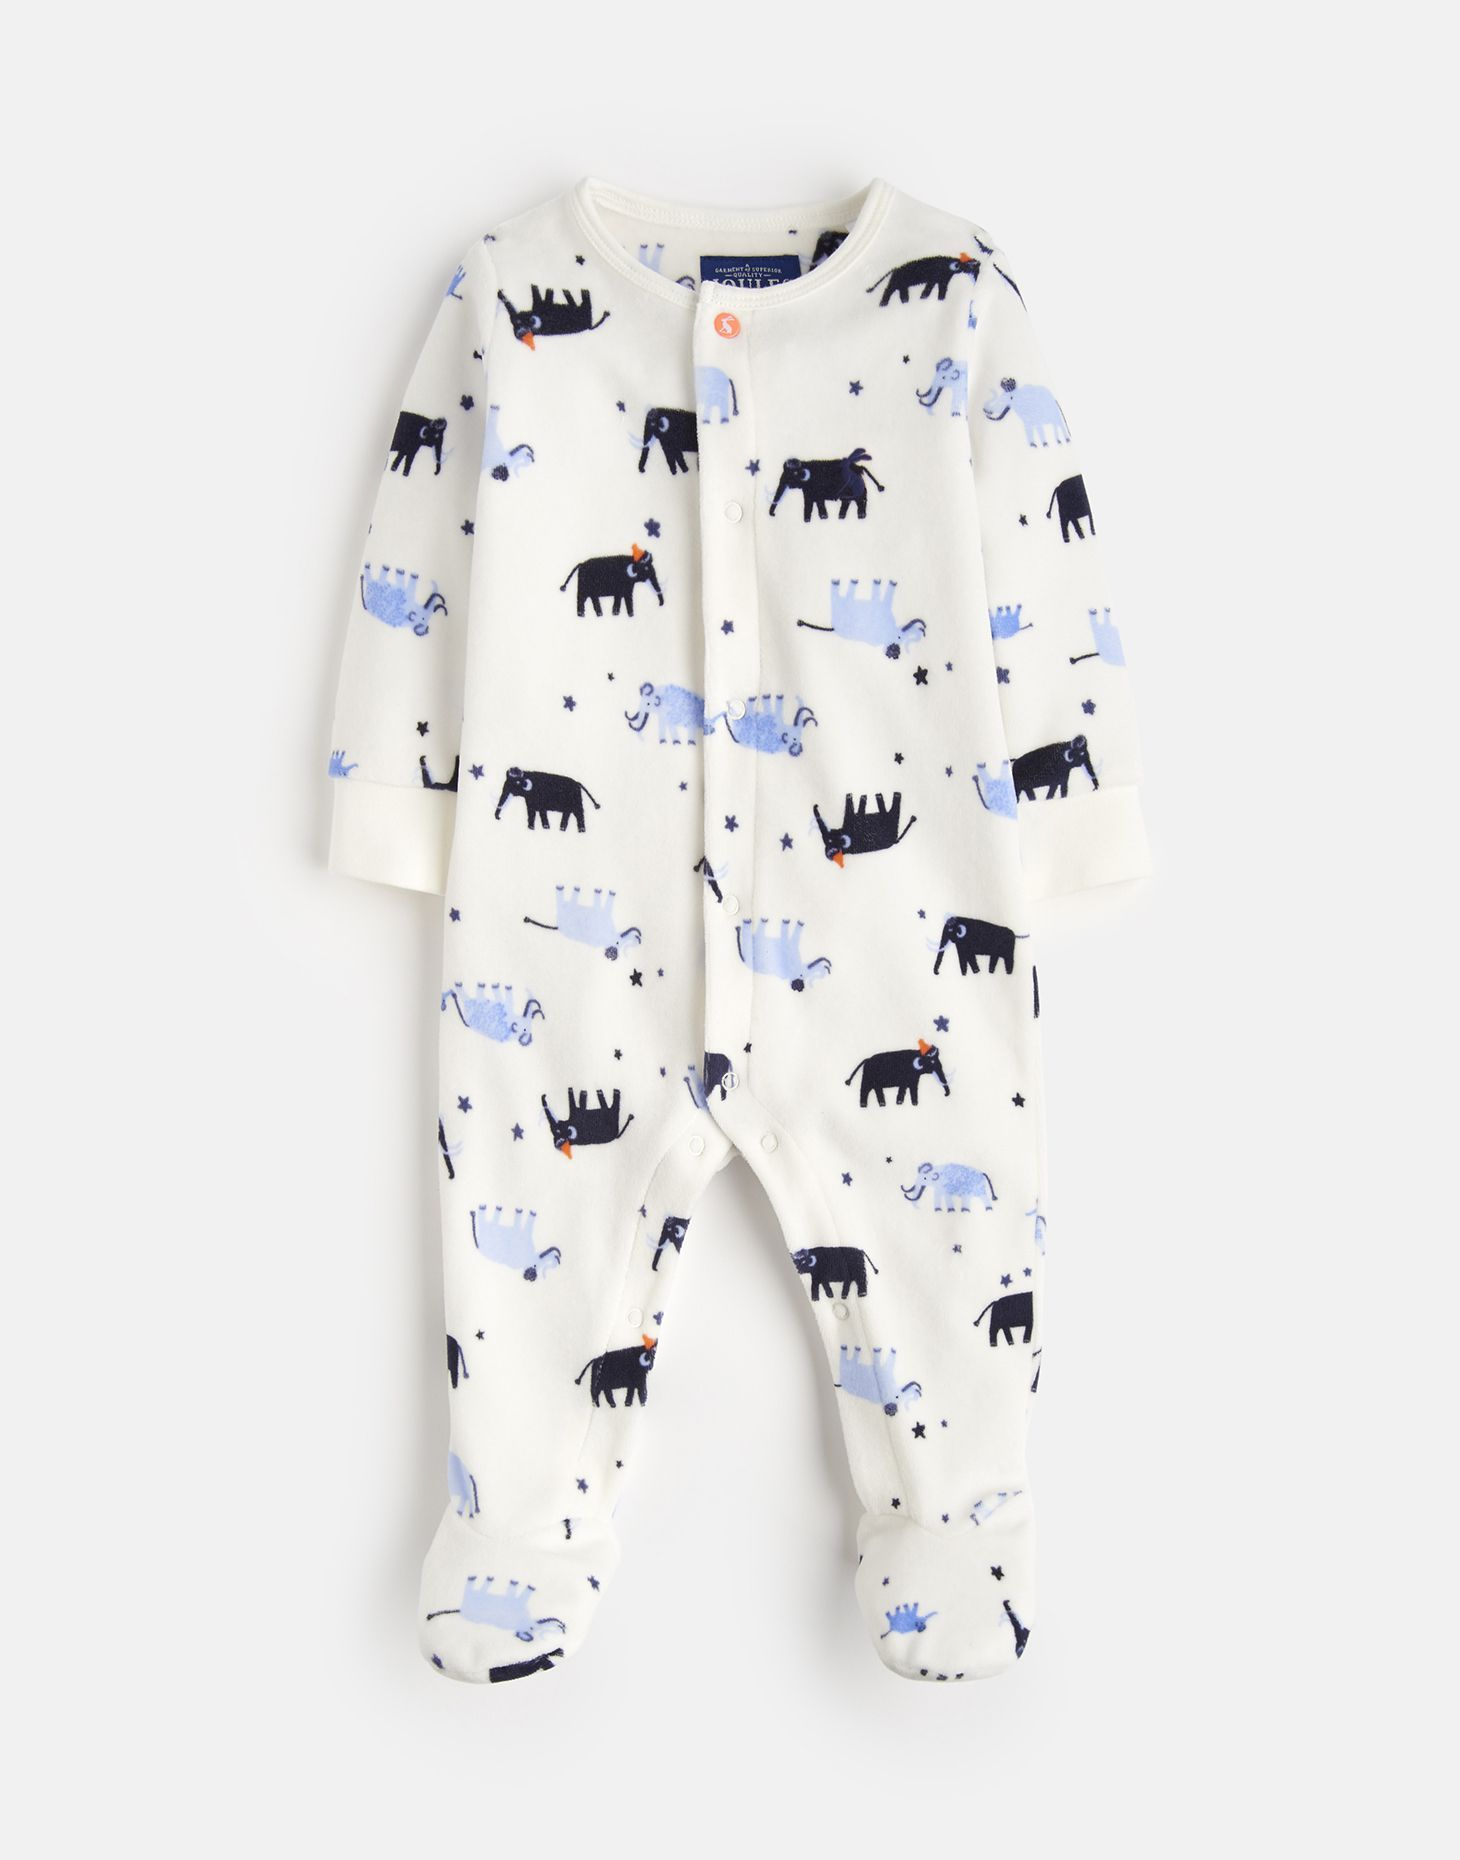 Baby & Toddler Clothing Earnest Baby Mothercare Up To 3 Months Snowsuit Outerwear